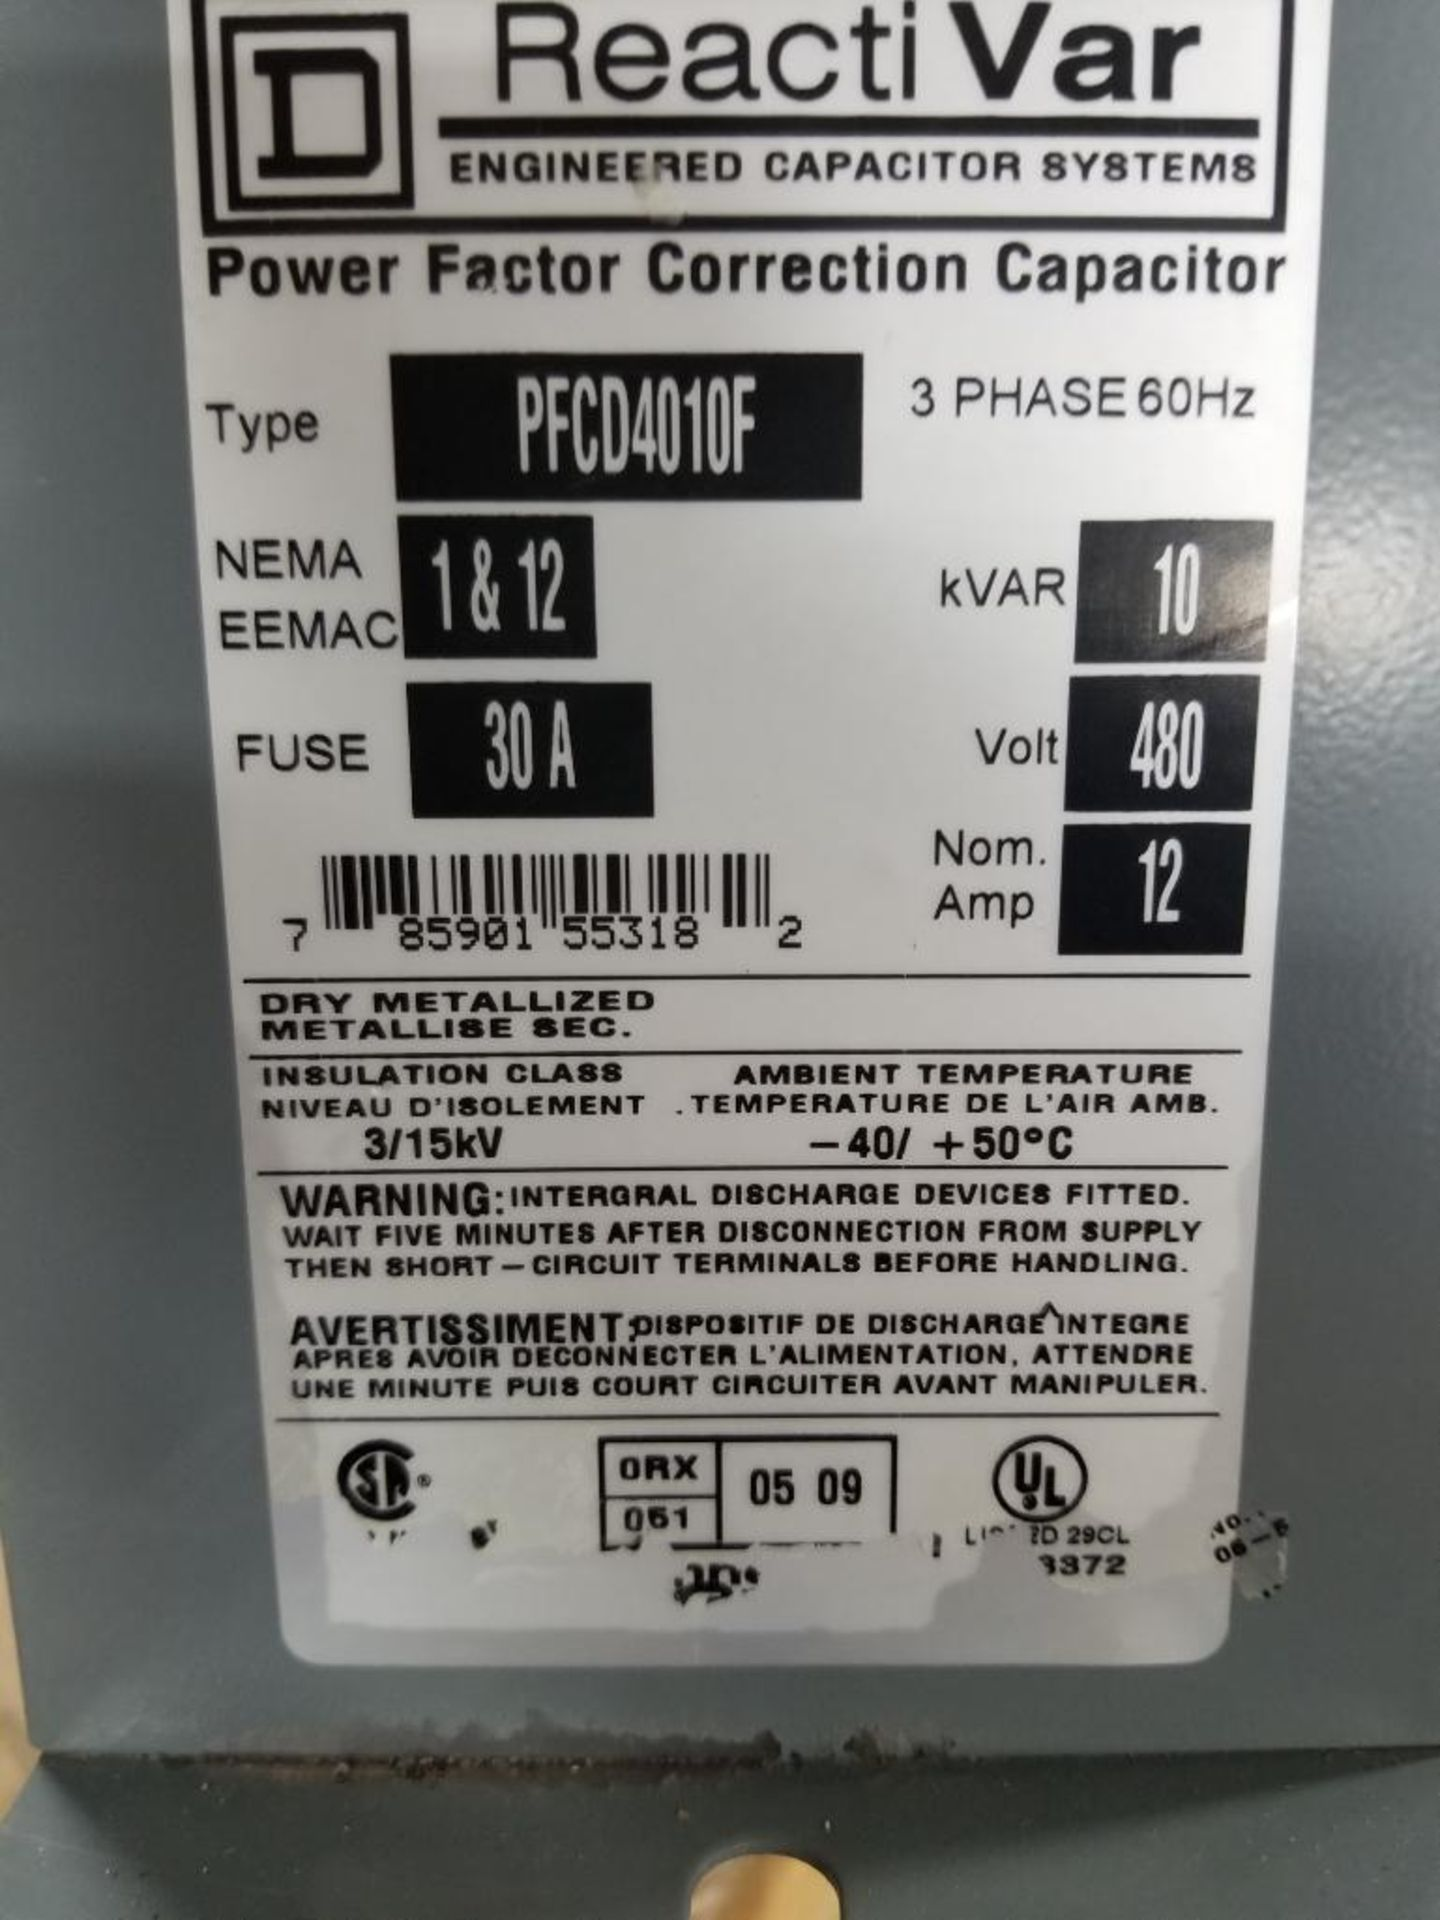 Square-D ReactiVar PFCD4010F 3PH Power factor correction capacitor. - Image 2 of 2